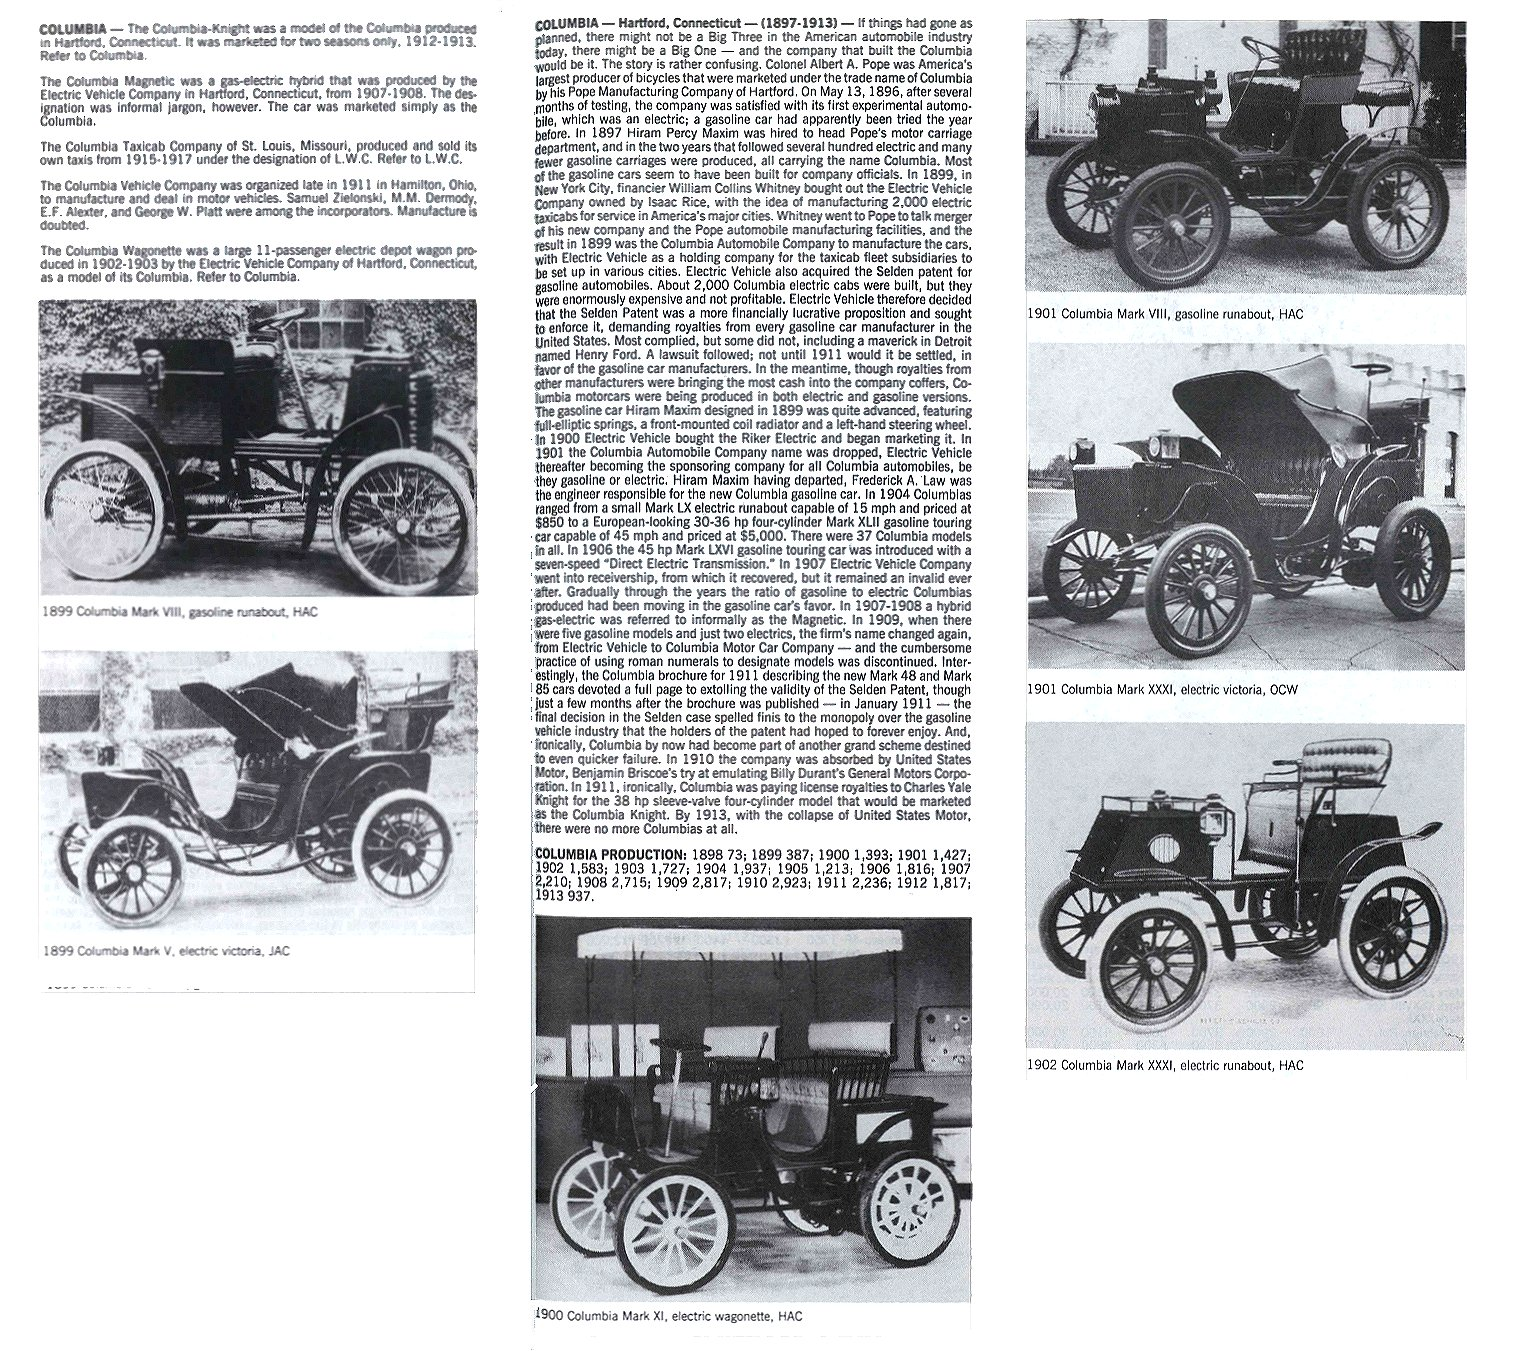 COLUMBIA Hartford, Connecticut 1897-1913 Standard Catalog of AMERICAN CARS 1805-1942 By Beverly Rae Kimes & Henry Austin Clark, Jr. Krause Publications ISBN: 0-87341-428-4 Page 357 8.5″x11″